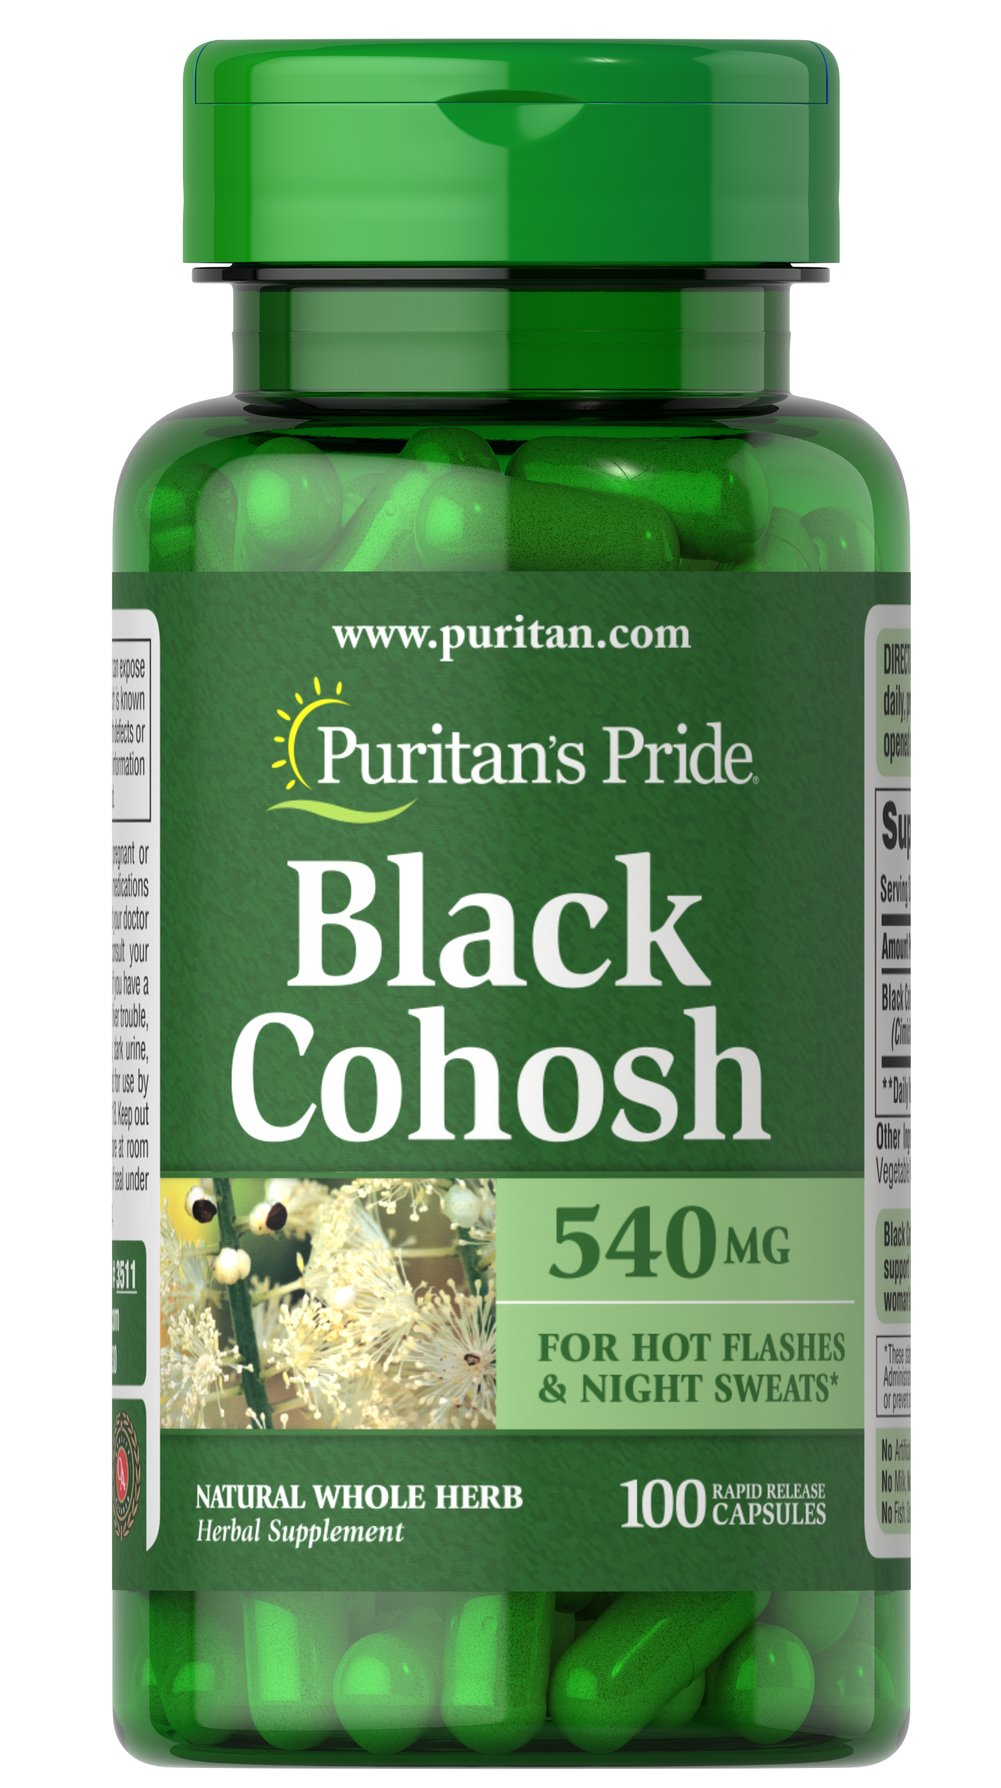 Black Cohosh 540 mg  100 Capsules 540 mg $14.99